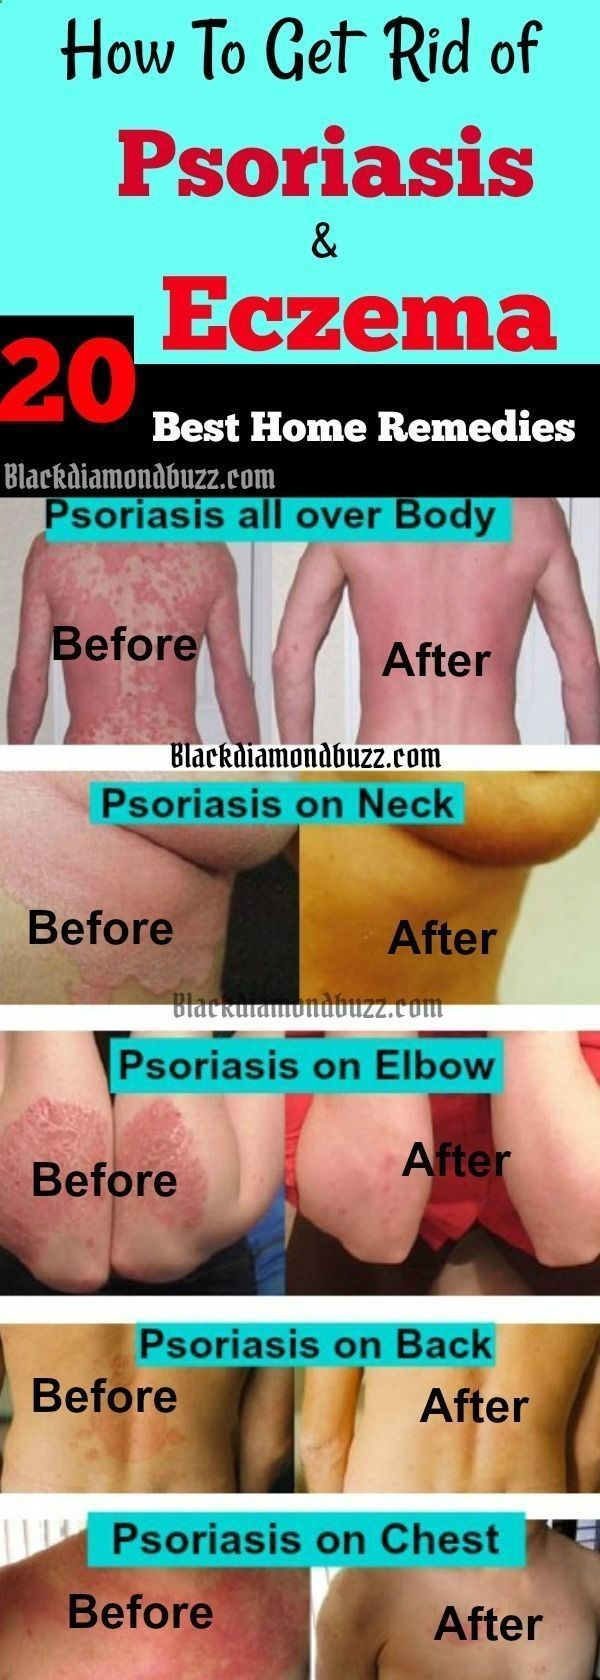 Psoriasis Diet - Discover here on How to Get Rid of